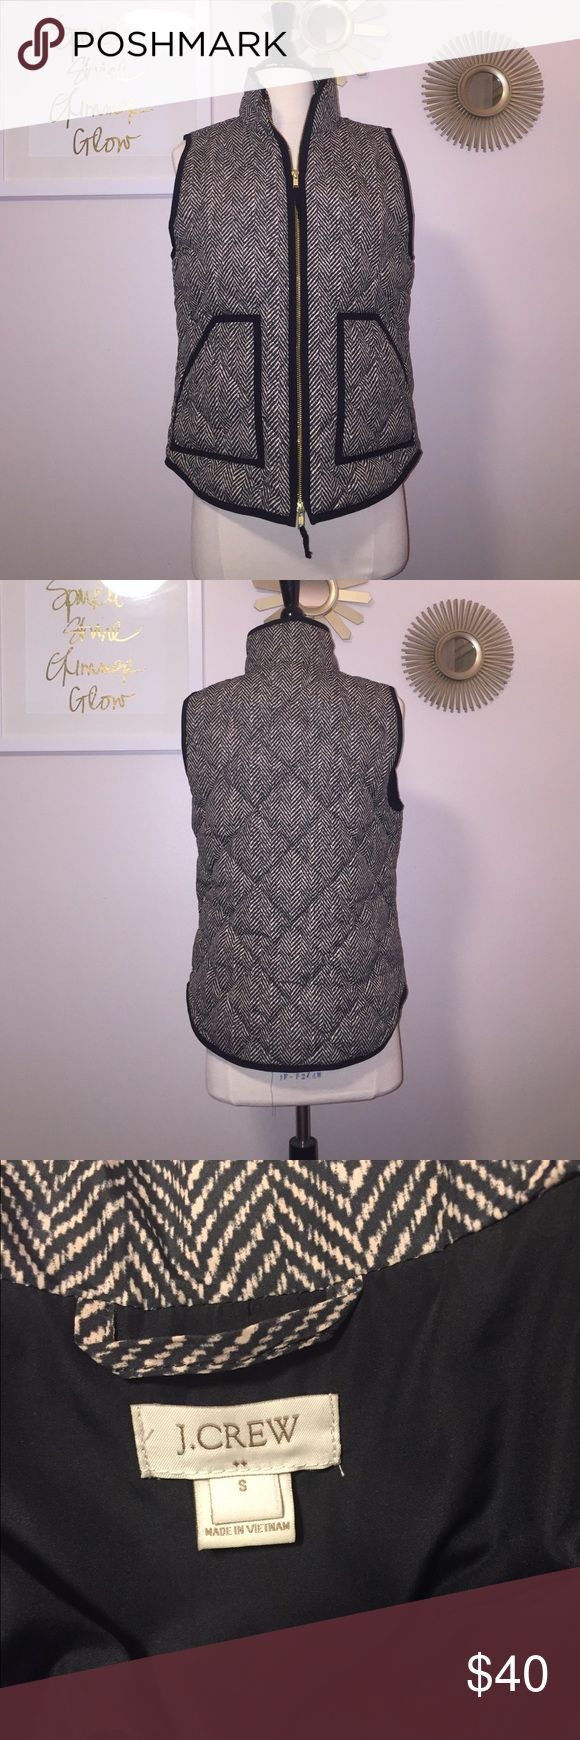 J Crew Vest J Crew Printed Quilted Puffer Vest. No trades. Great condition. Worn once. J. Crew Jackets & Coats Vests